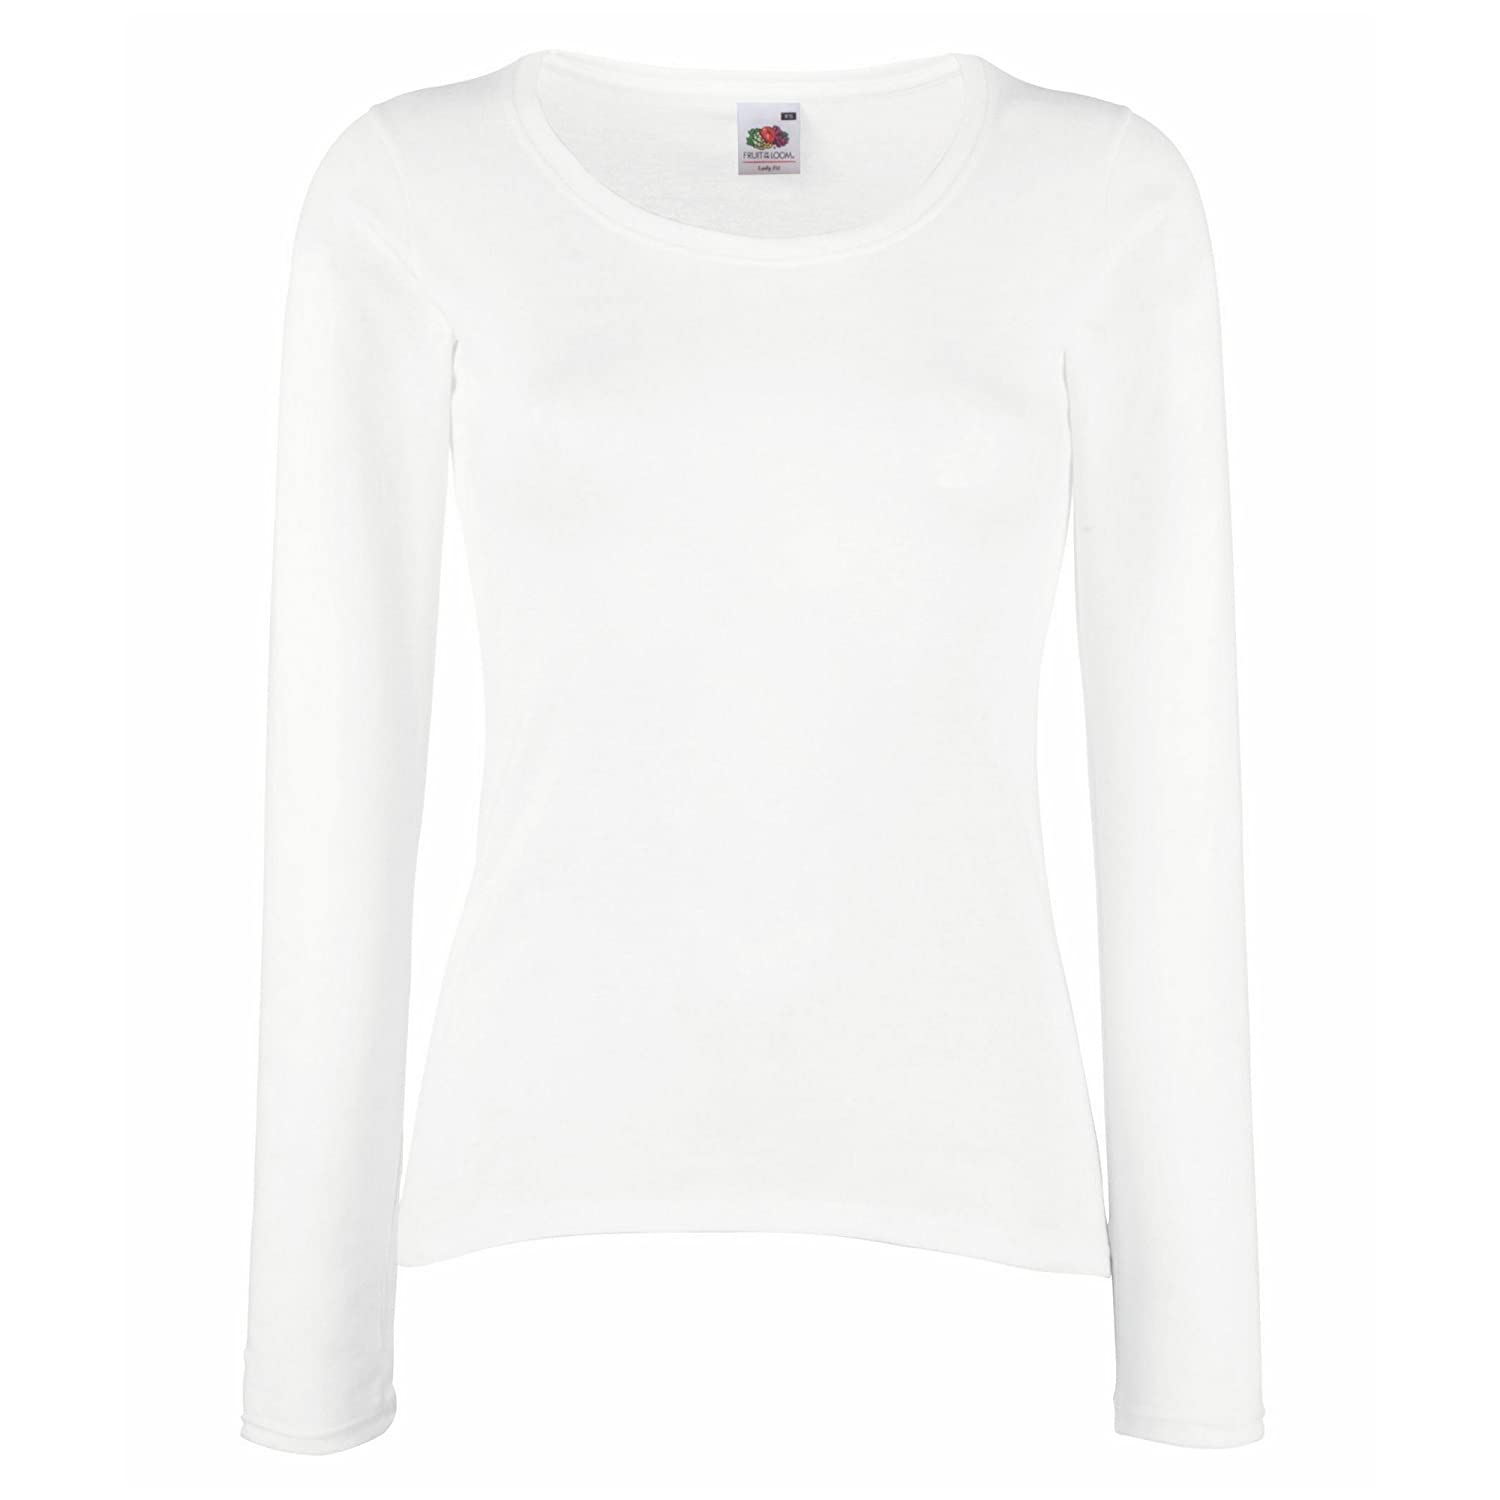 Fruit of the Loom Ladies/Womens Lady-Fit Long Sleeve Crew Neck T-Shirt